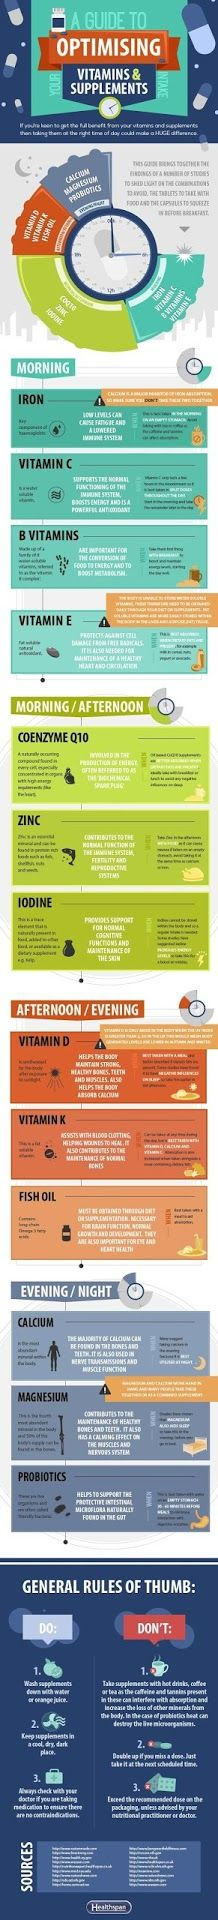 Guide to Optimizing Intake of Vitamins and Supplement Infographic from Healthspan